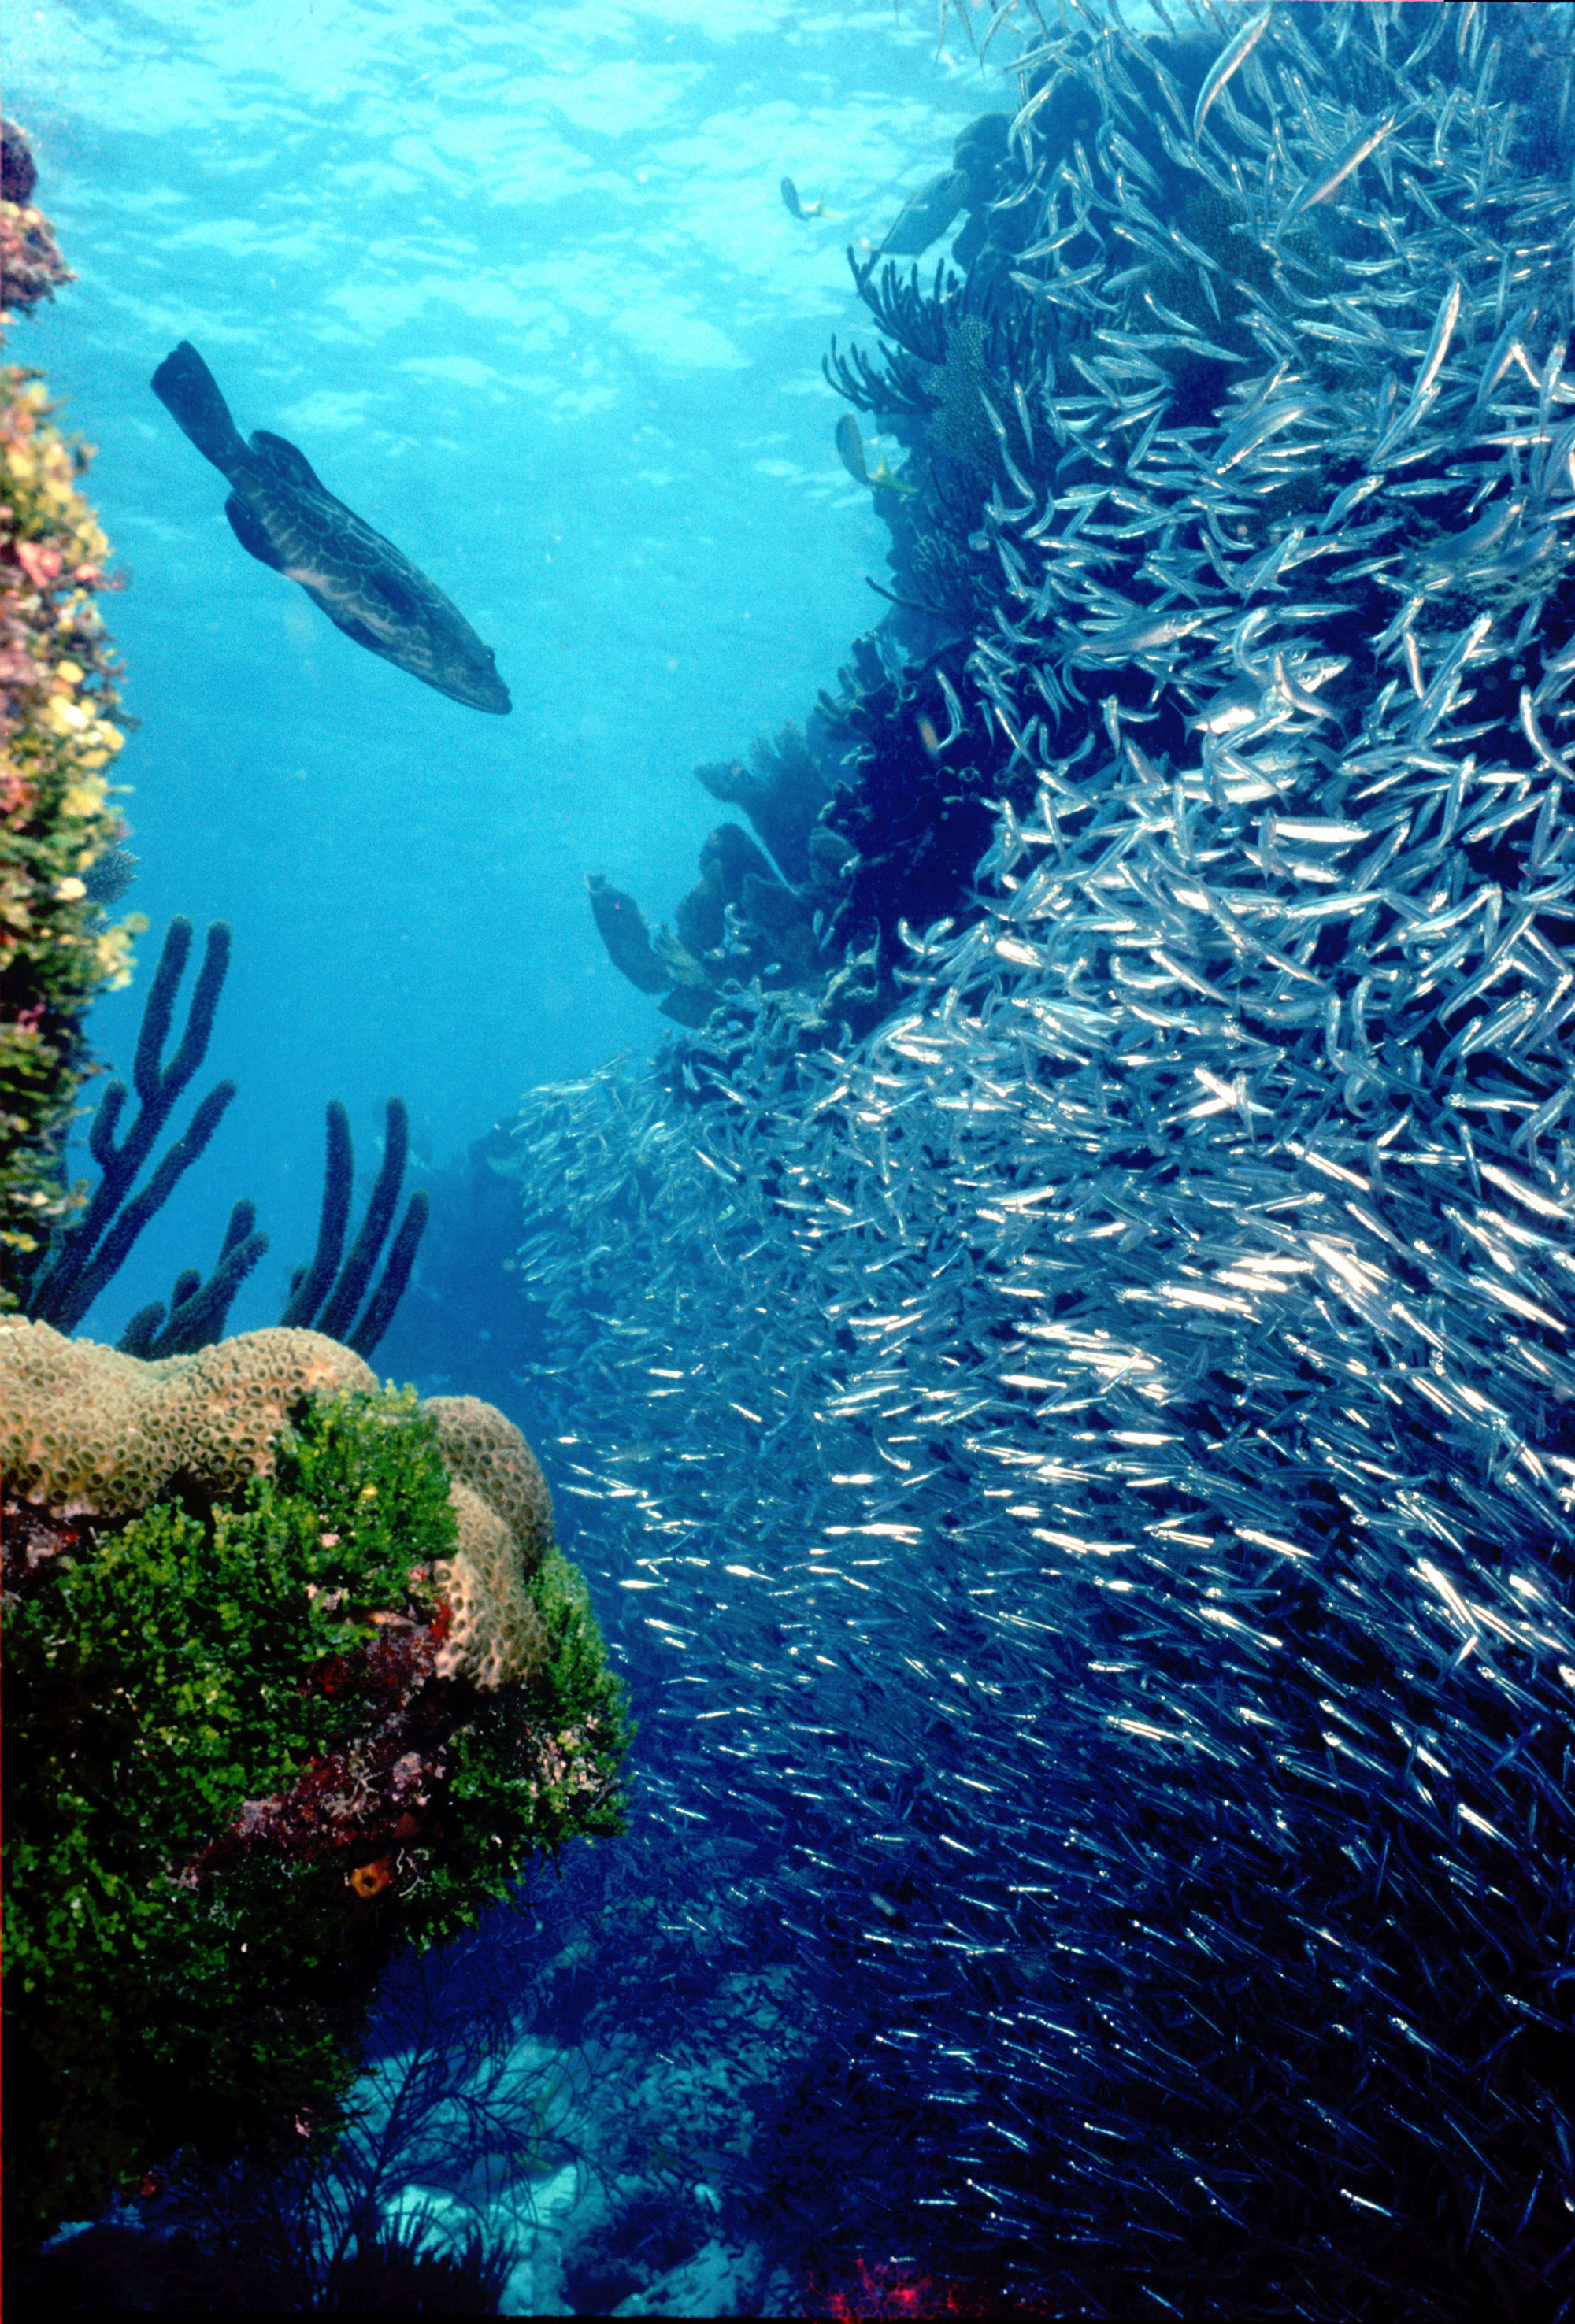 Coral reefs provide food for swarms of fish, both large and small.<div class='credit'><strong>Credit:</strong> Coral reefs provide food for swarms of fish, both large and small.</div>